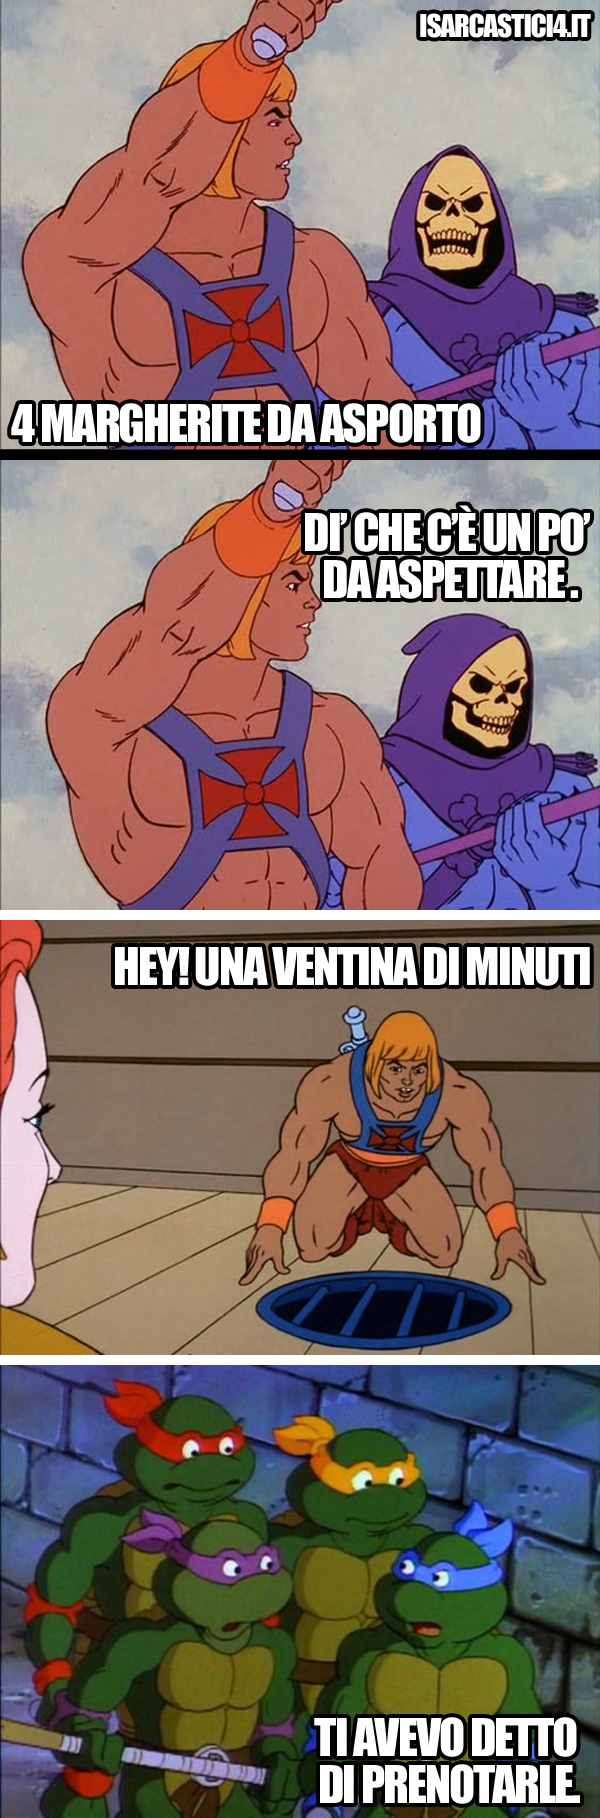 MOTU - Masters of the universe e TMNT - Teenage Mutant Ninja Turtles meme